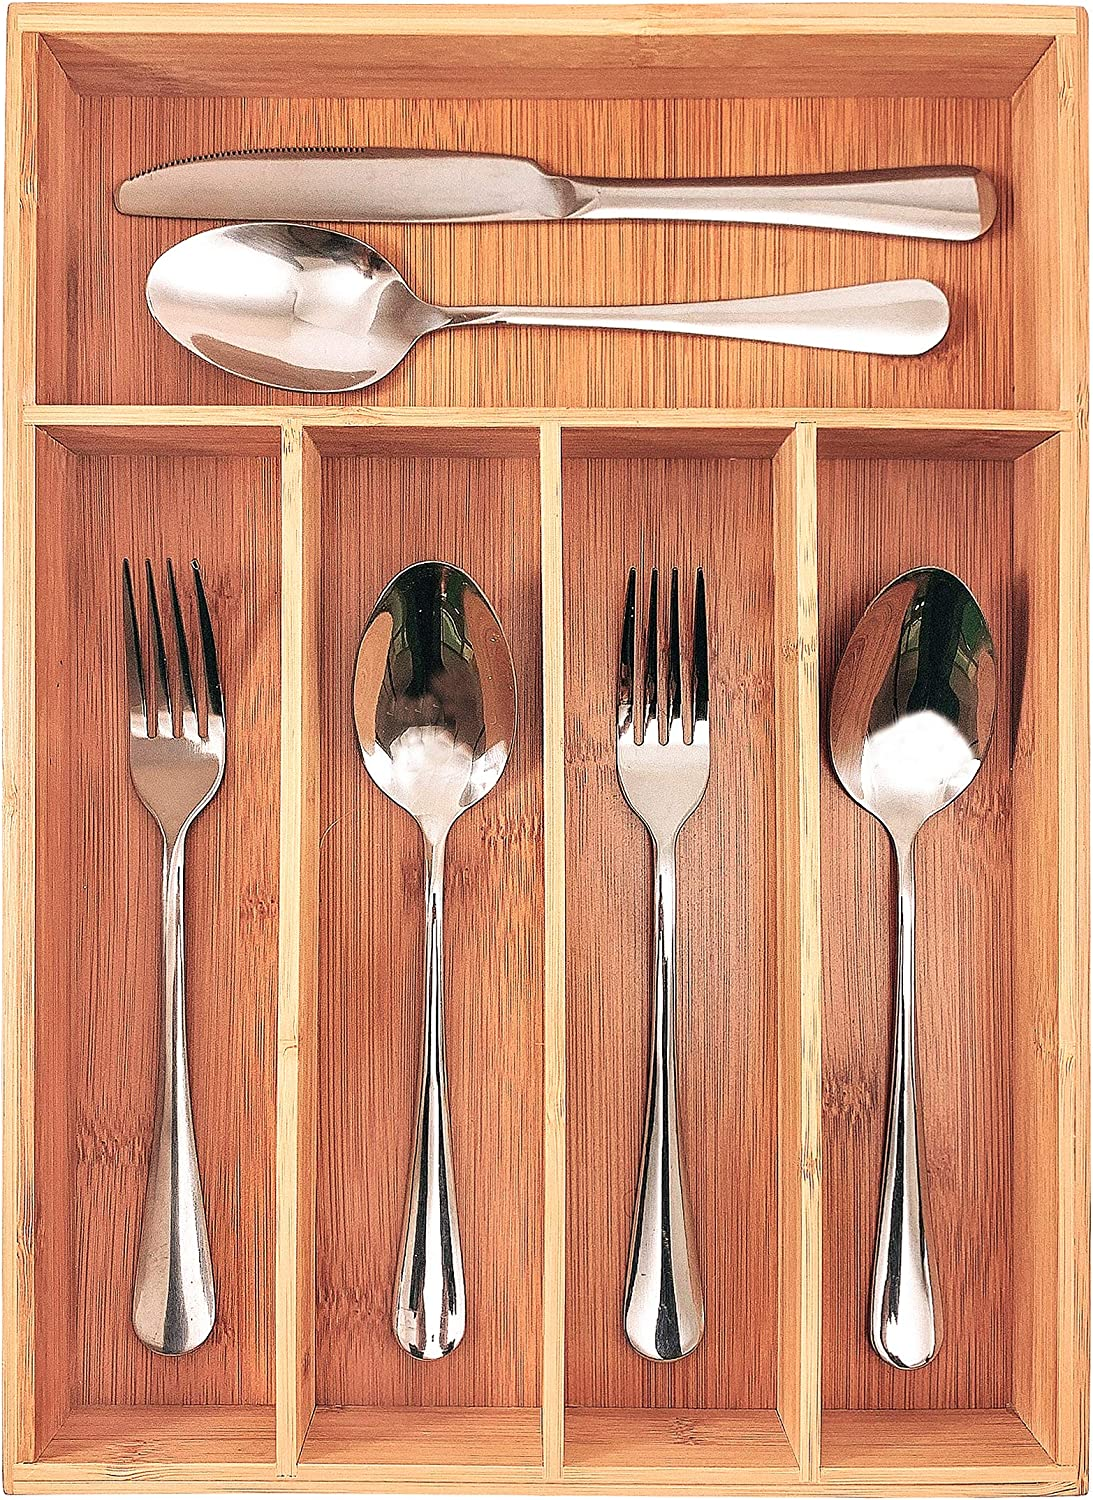 Kitchen Wood Utensil Tray Drawer Organizer,10 INCHES Bamboo Silverware Tray for Drawer,Small Cutlery Organizer, Flatware Holder,Office Storage Organizers,Knife Makeup Desk Drawer Dividers Insert